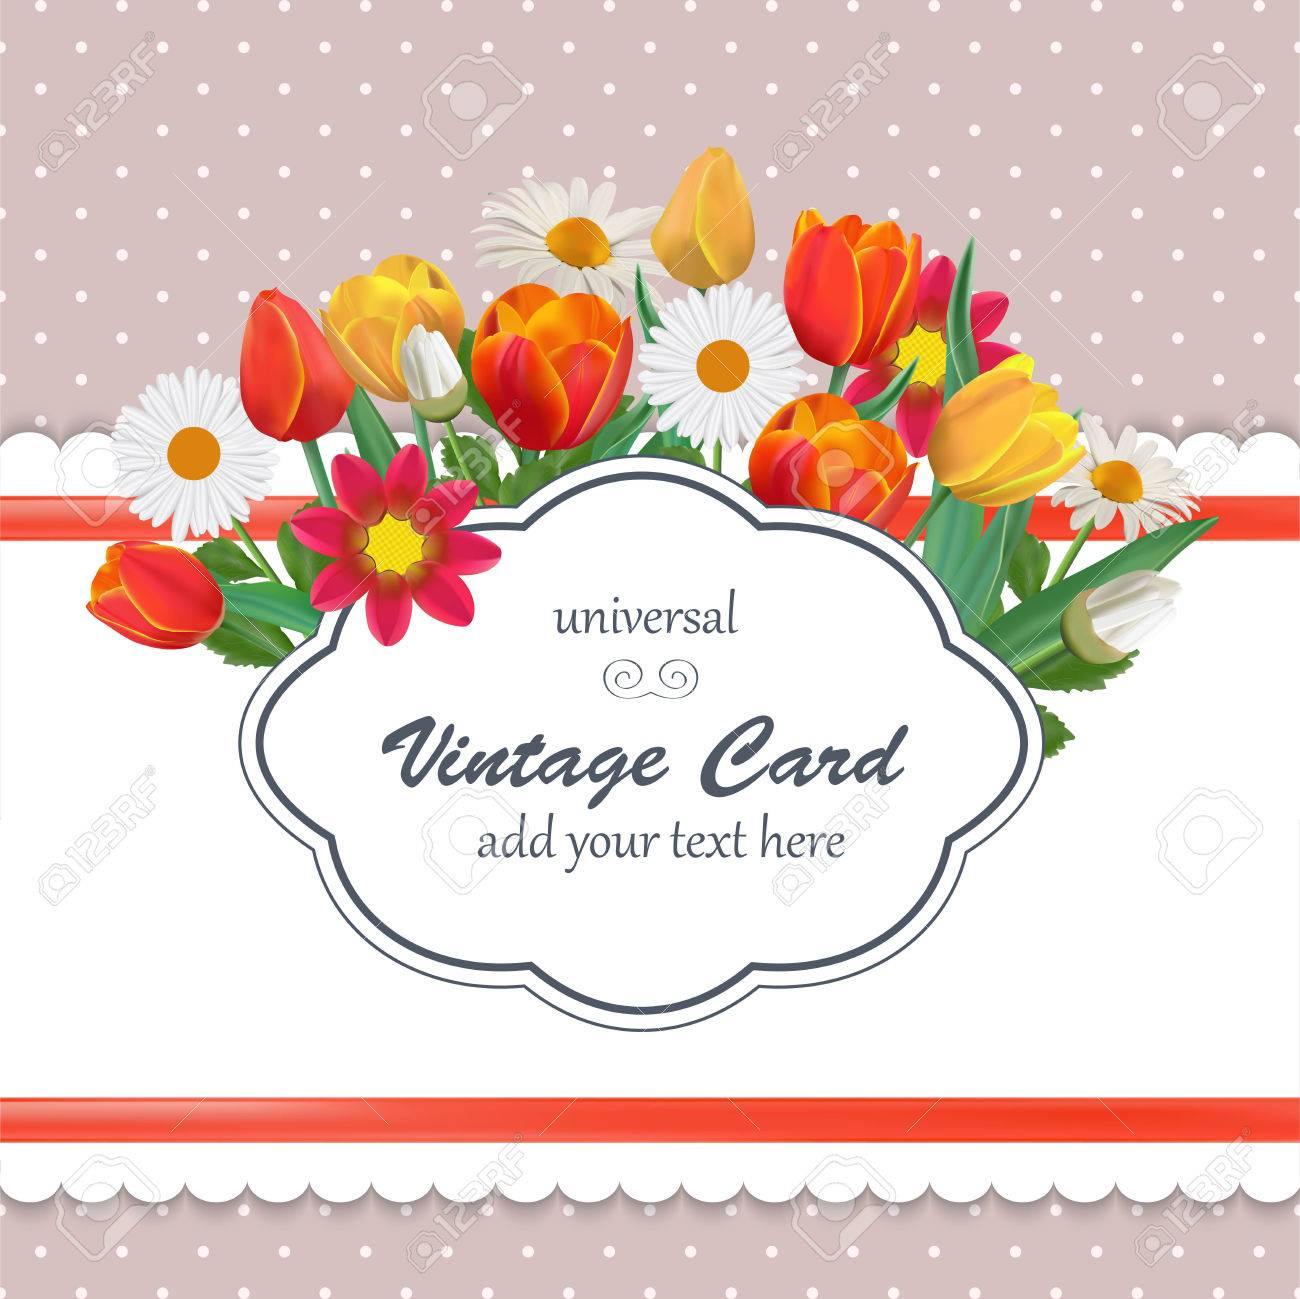 Can be used as background, wallpaper, invitation. - 53196228